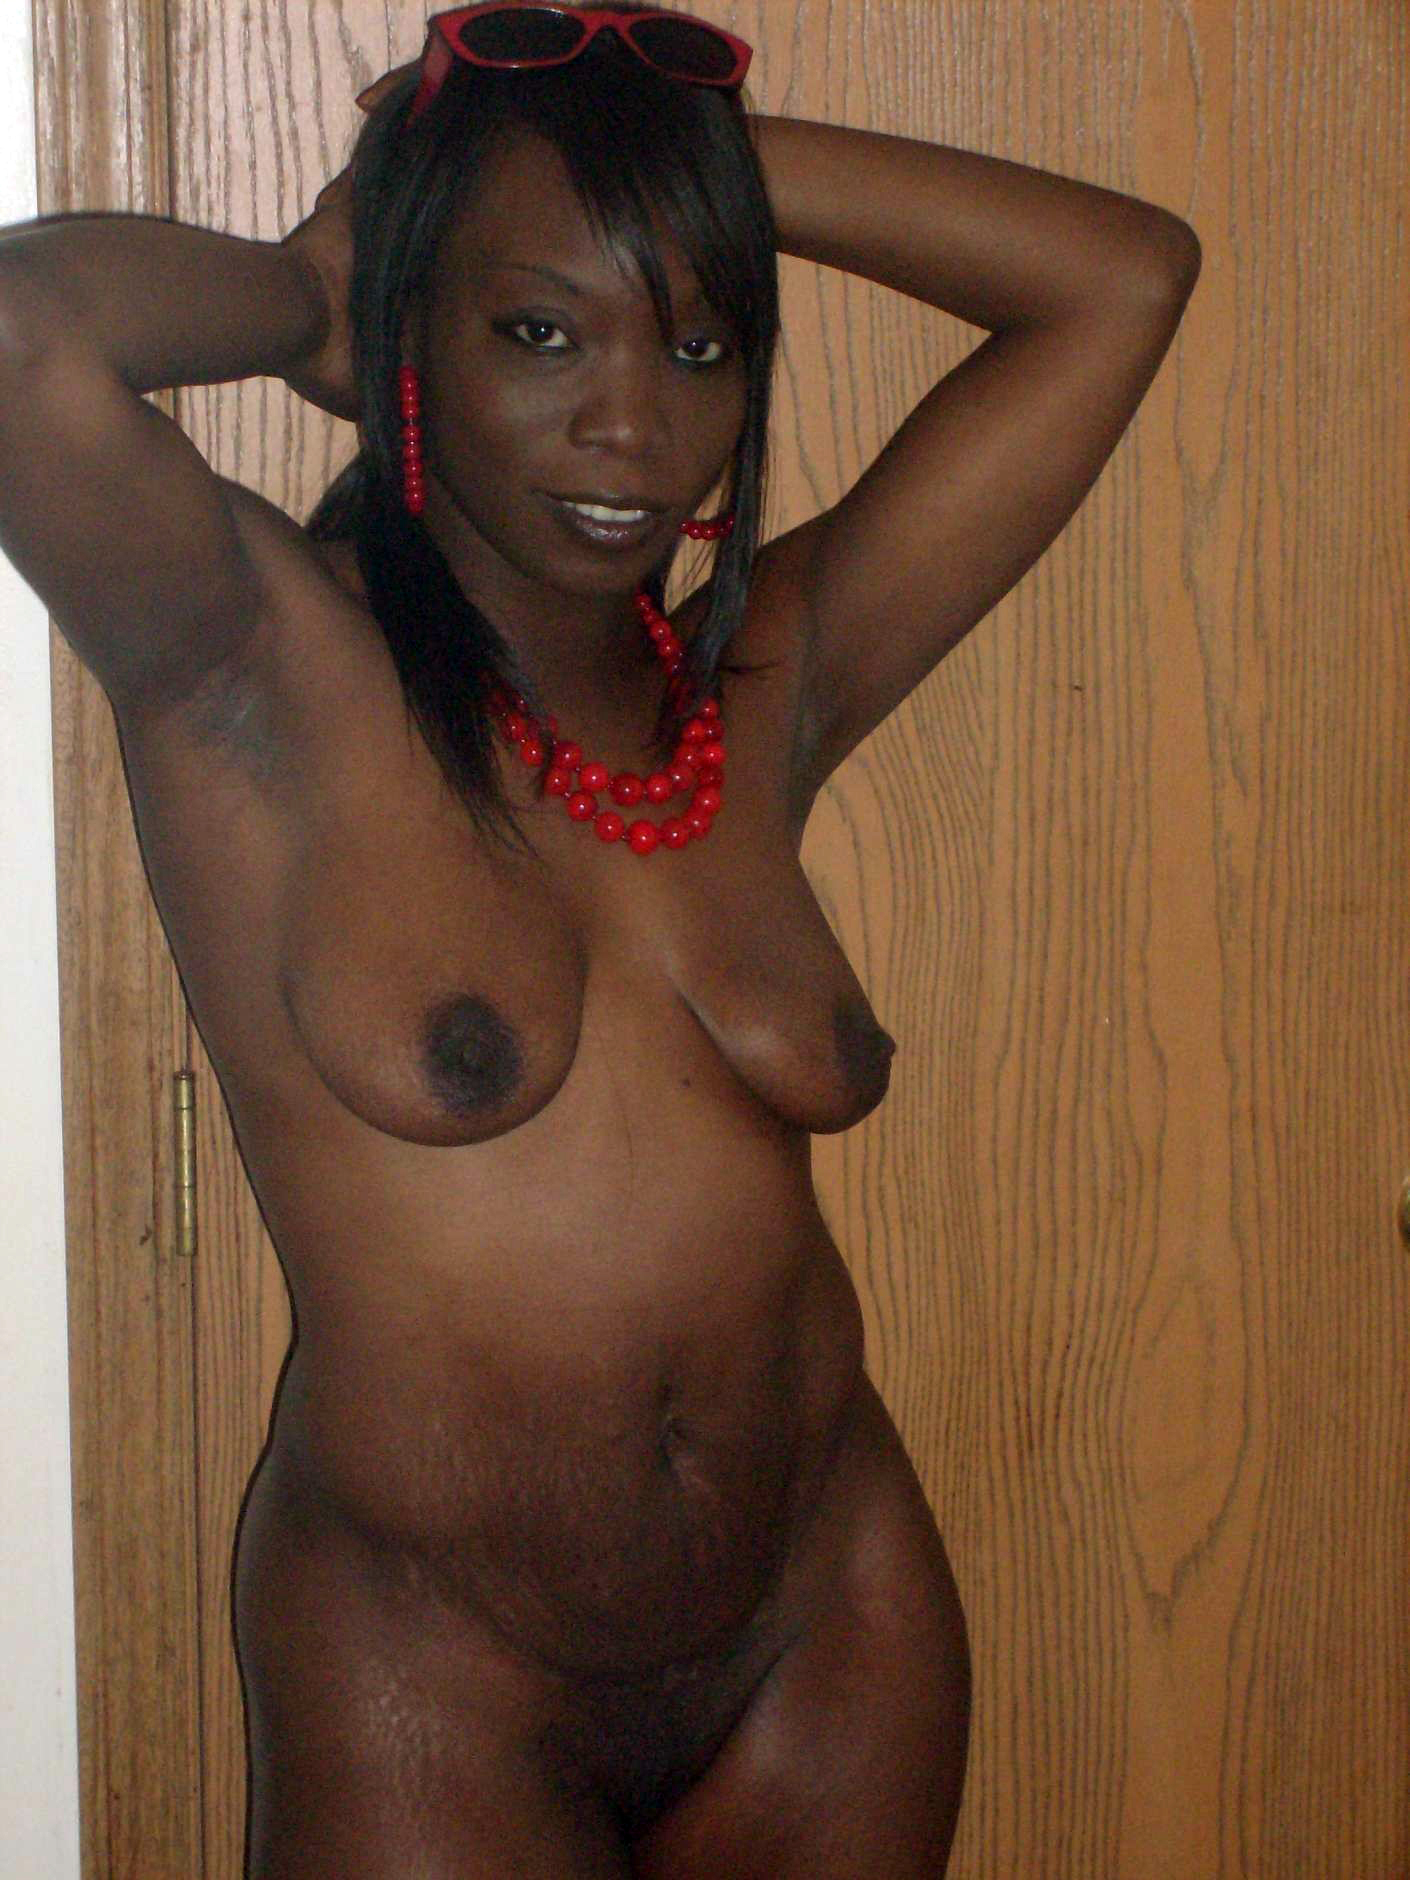 nigerian-girl-sexpic-girls-with-pony-tail-naked